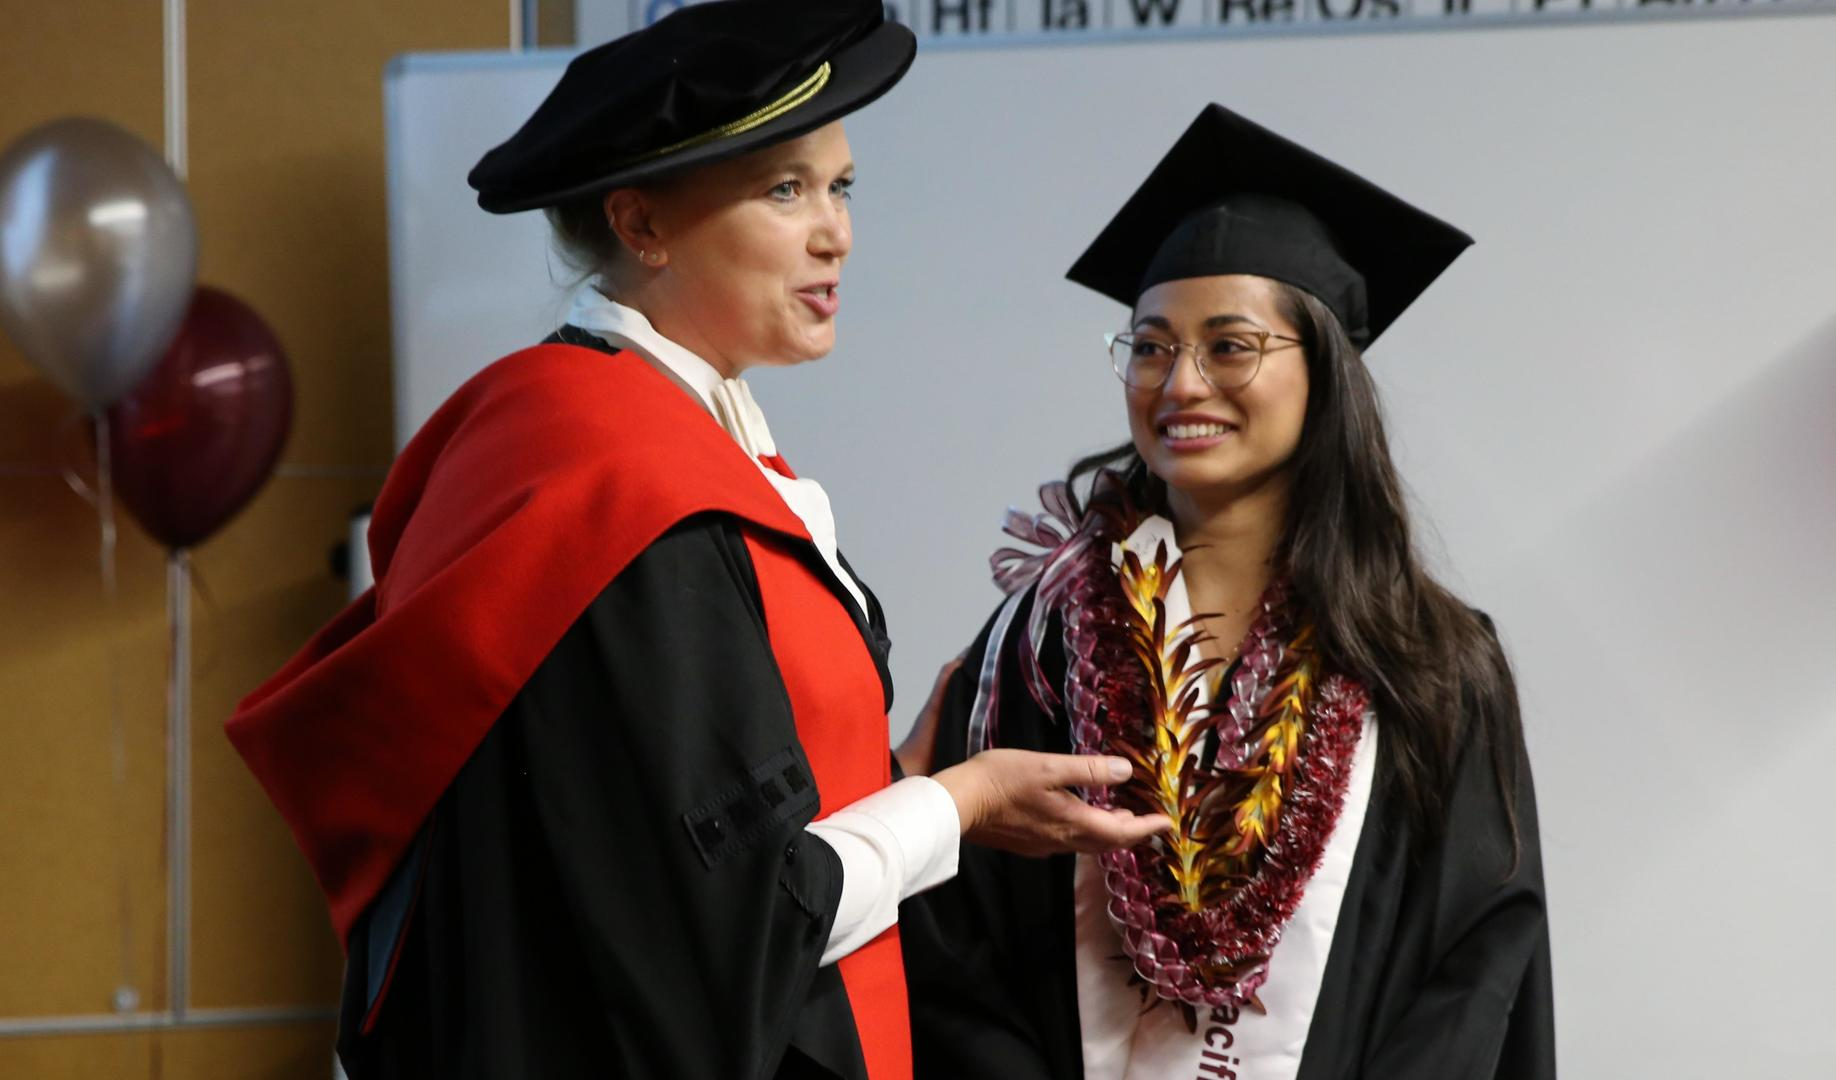 A student in a cap and gown speaks with a professor, who is in academic regalia.